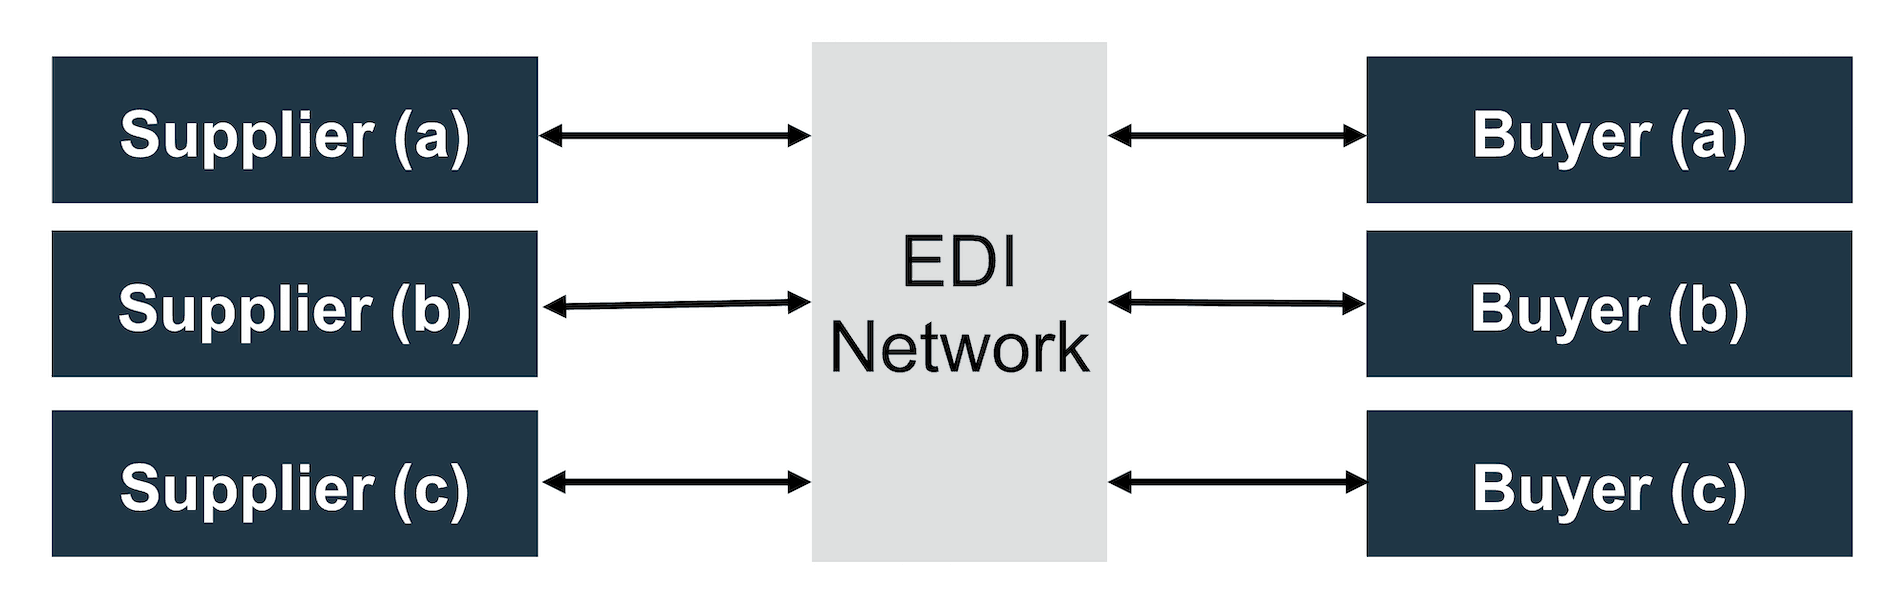 Many-to-many connections for suppliers and buyers